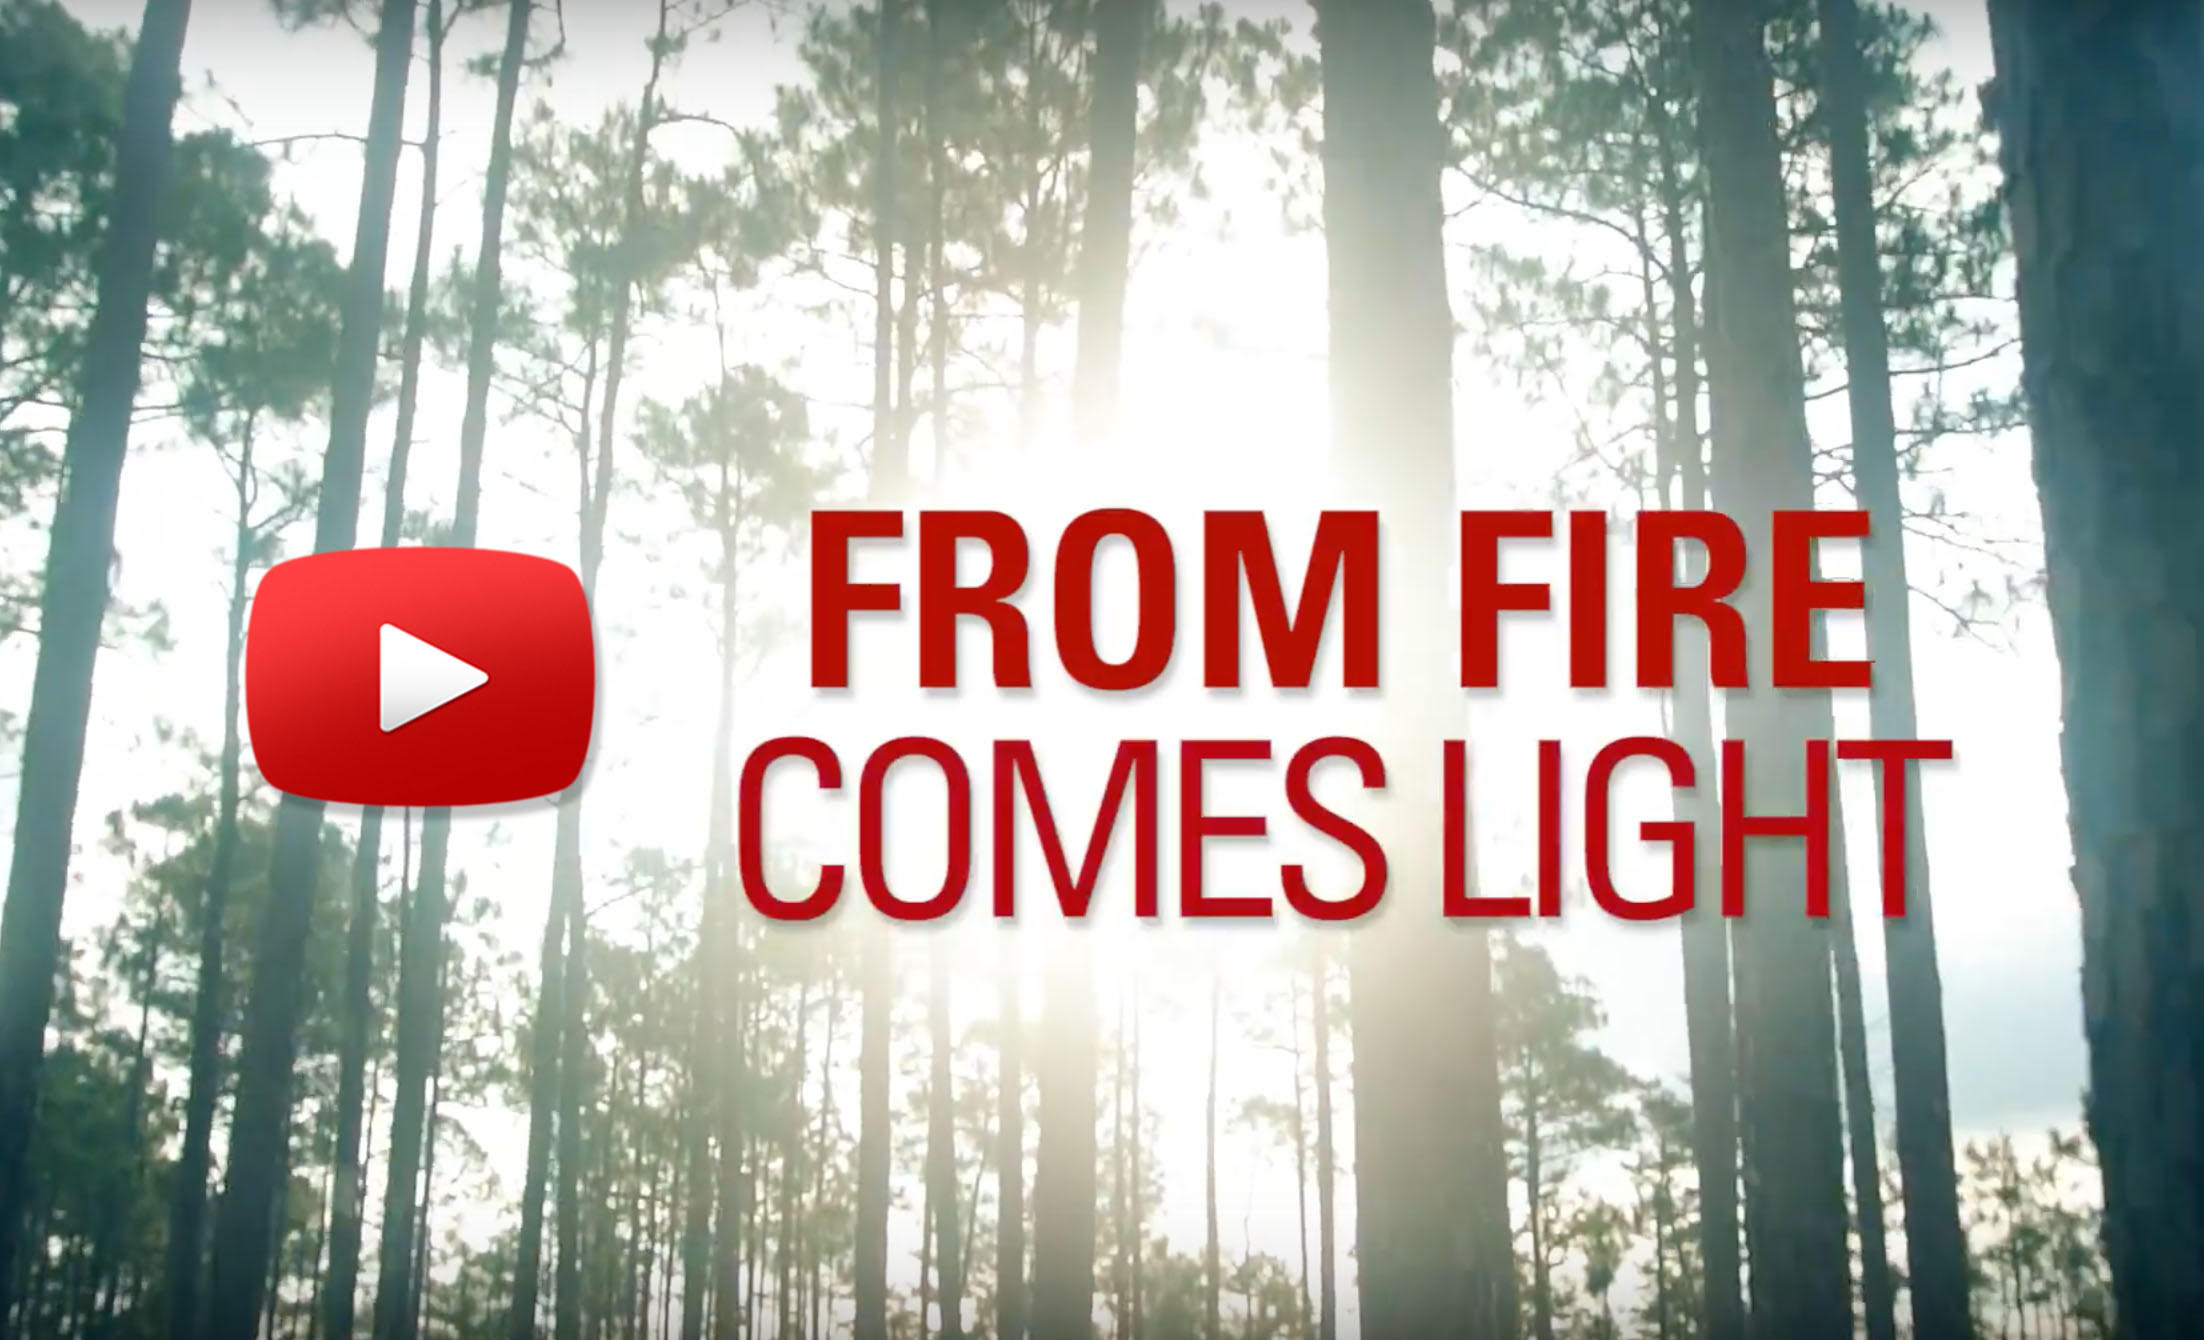 From Fire Comes Light